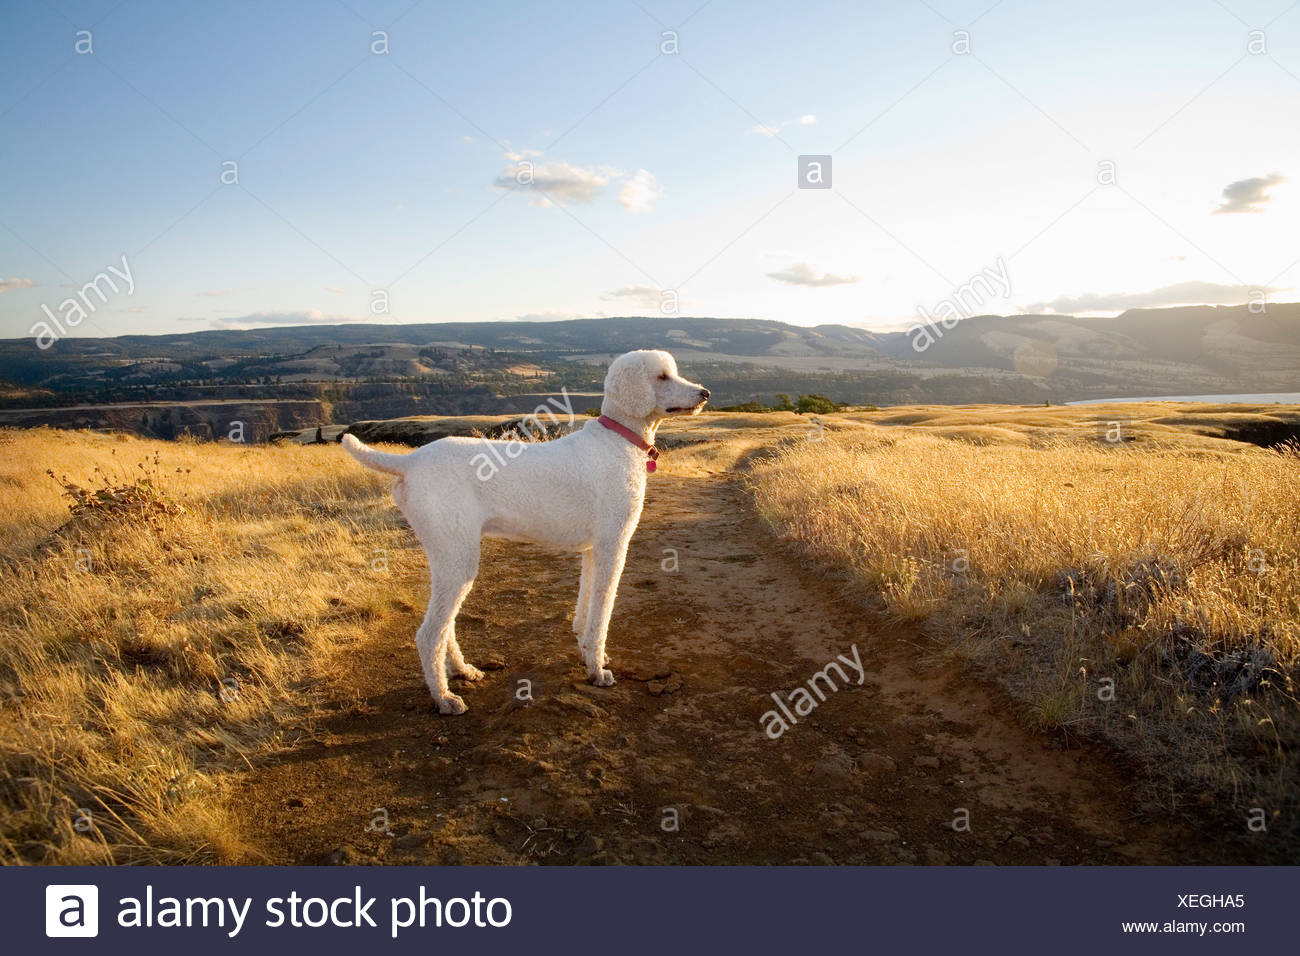 Dog standing alone on dirt path - Stock Image